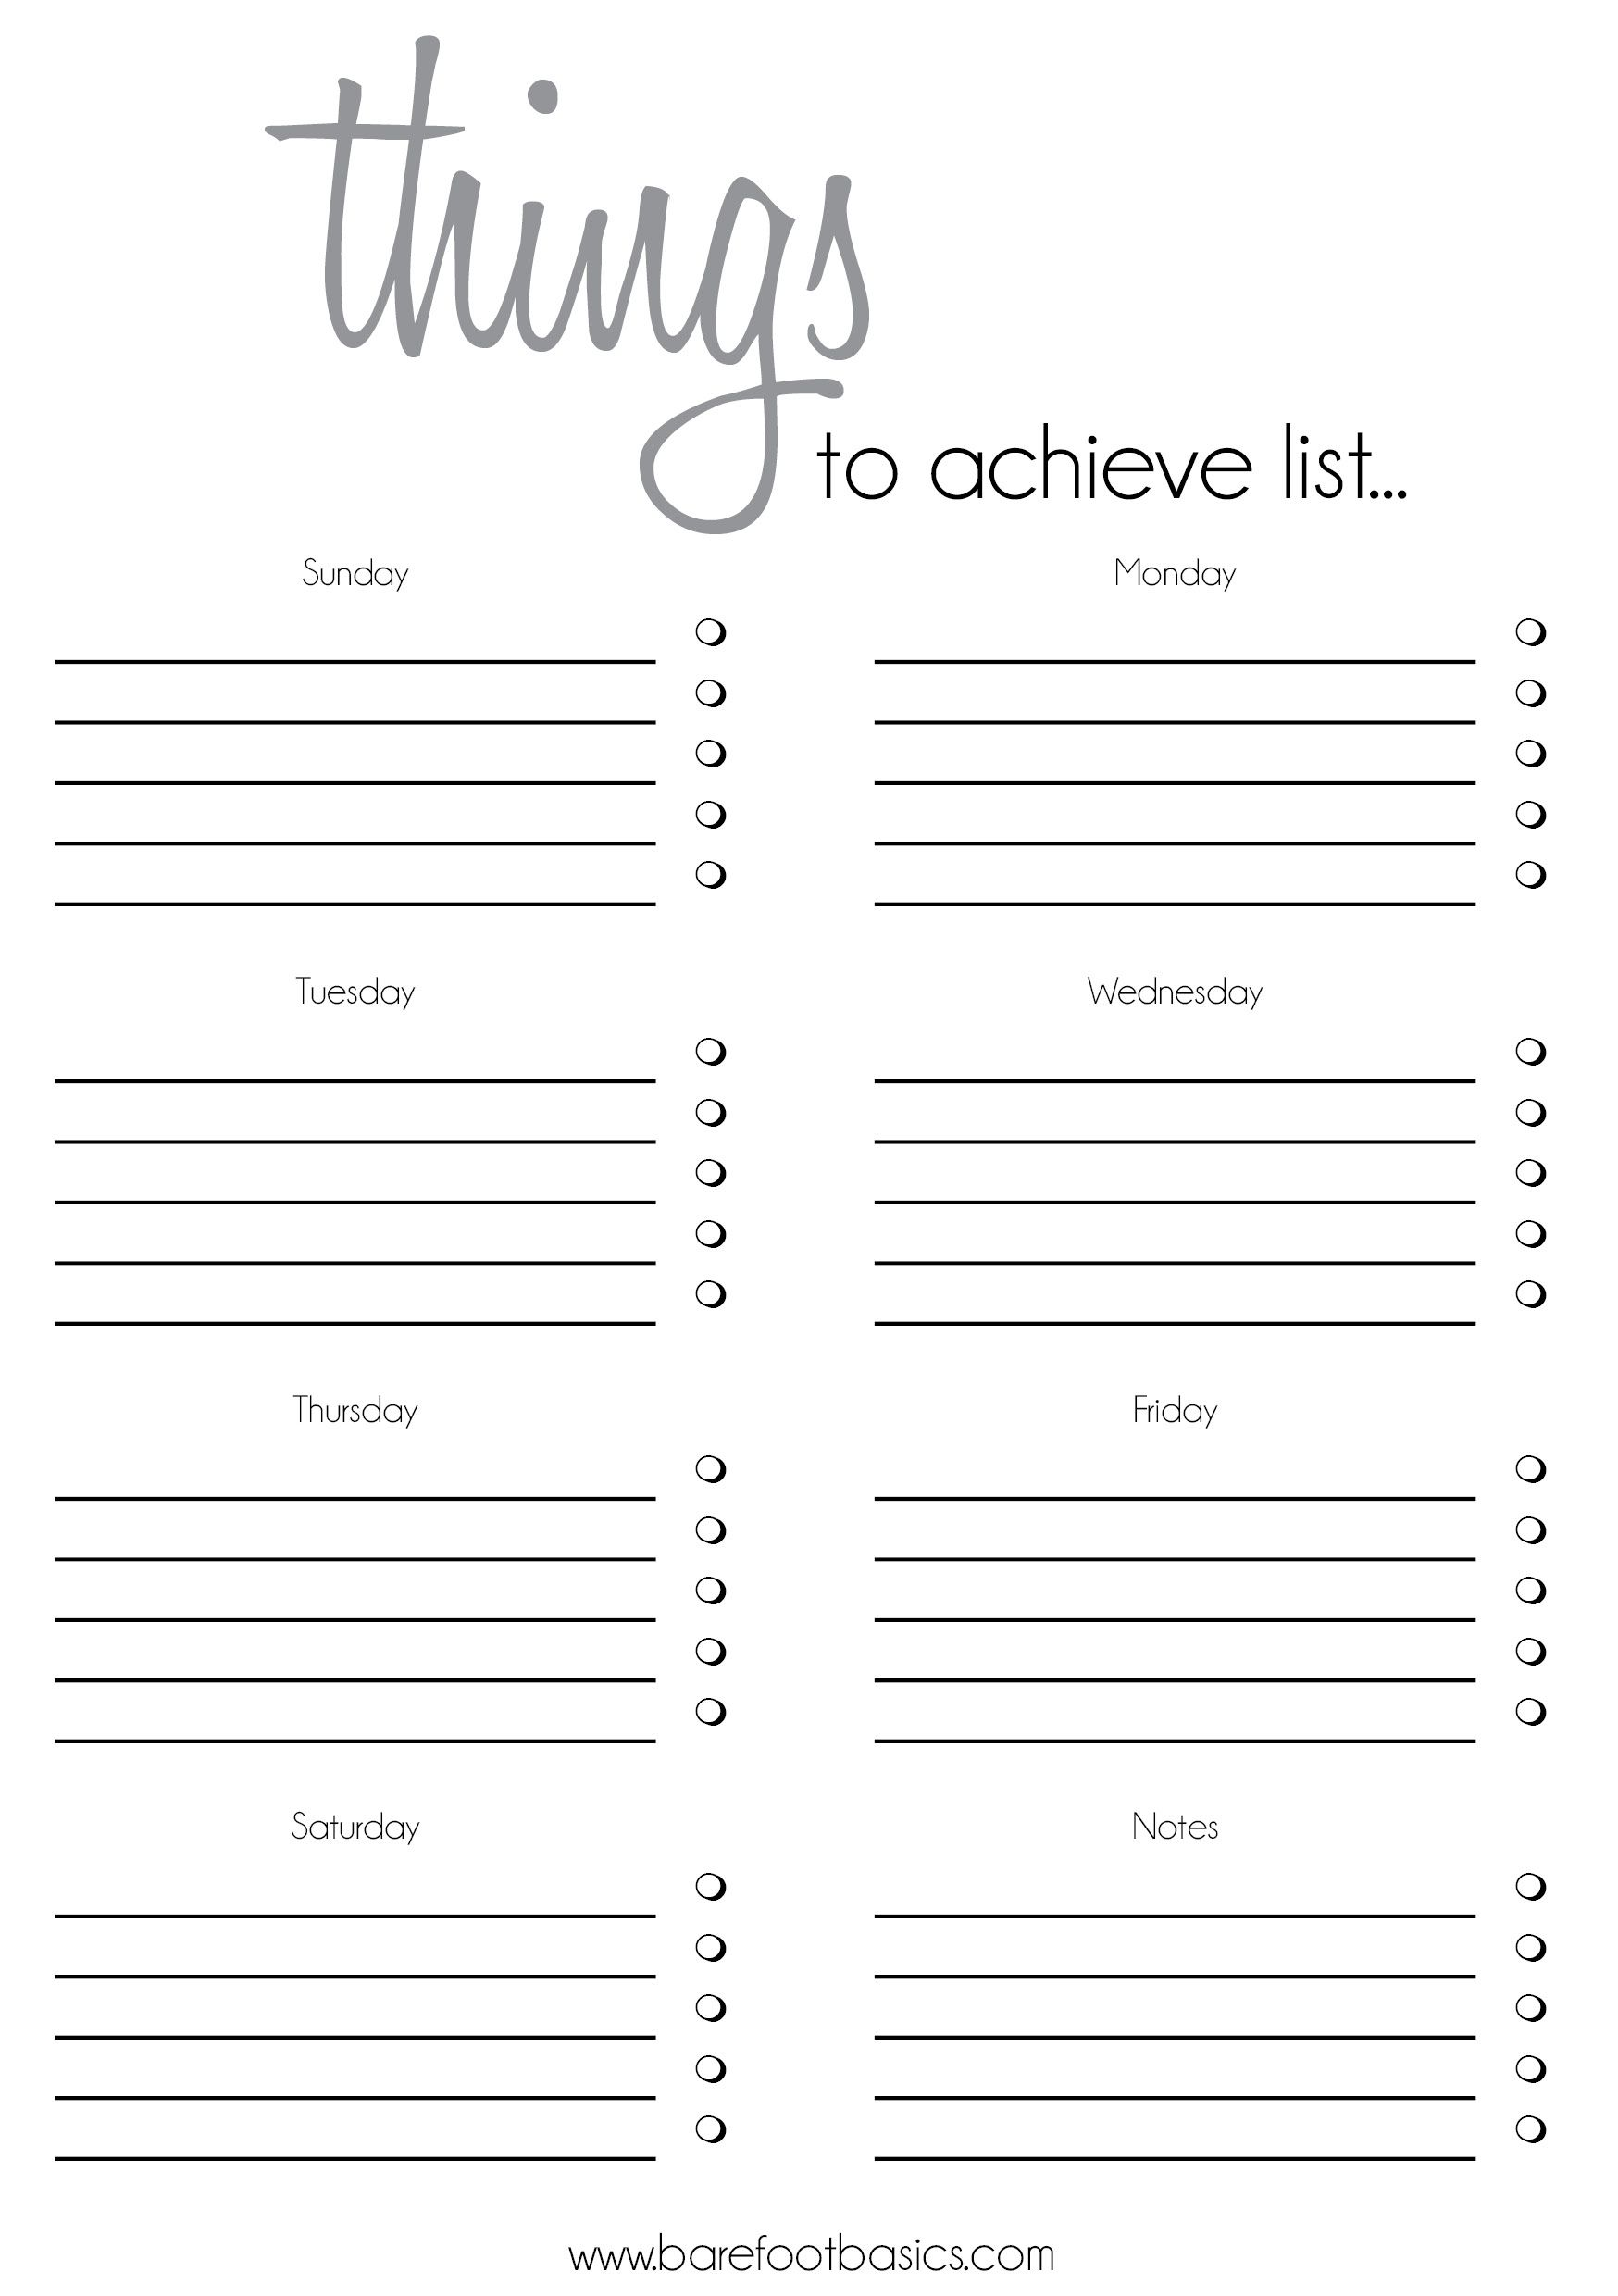 To Do List Template | Rochelle Stone U2013 Barefoot Basics U2013 Soul Inspired  Communication And .  Daily Task Log Template